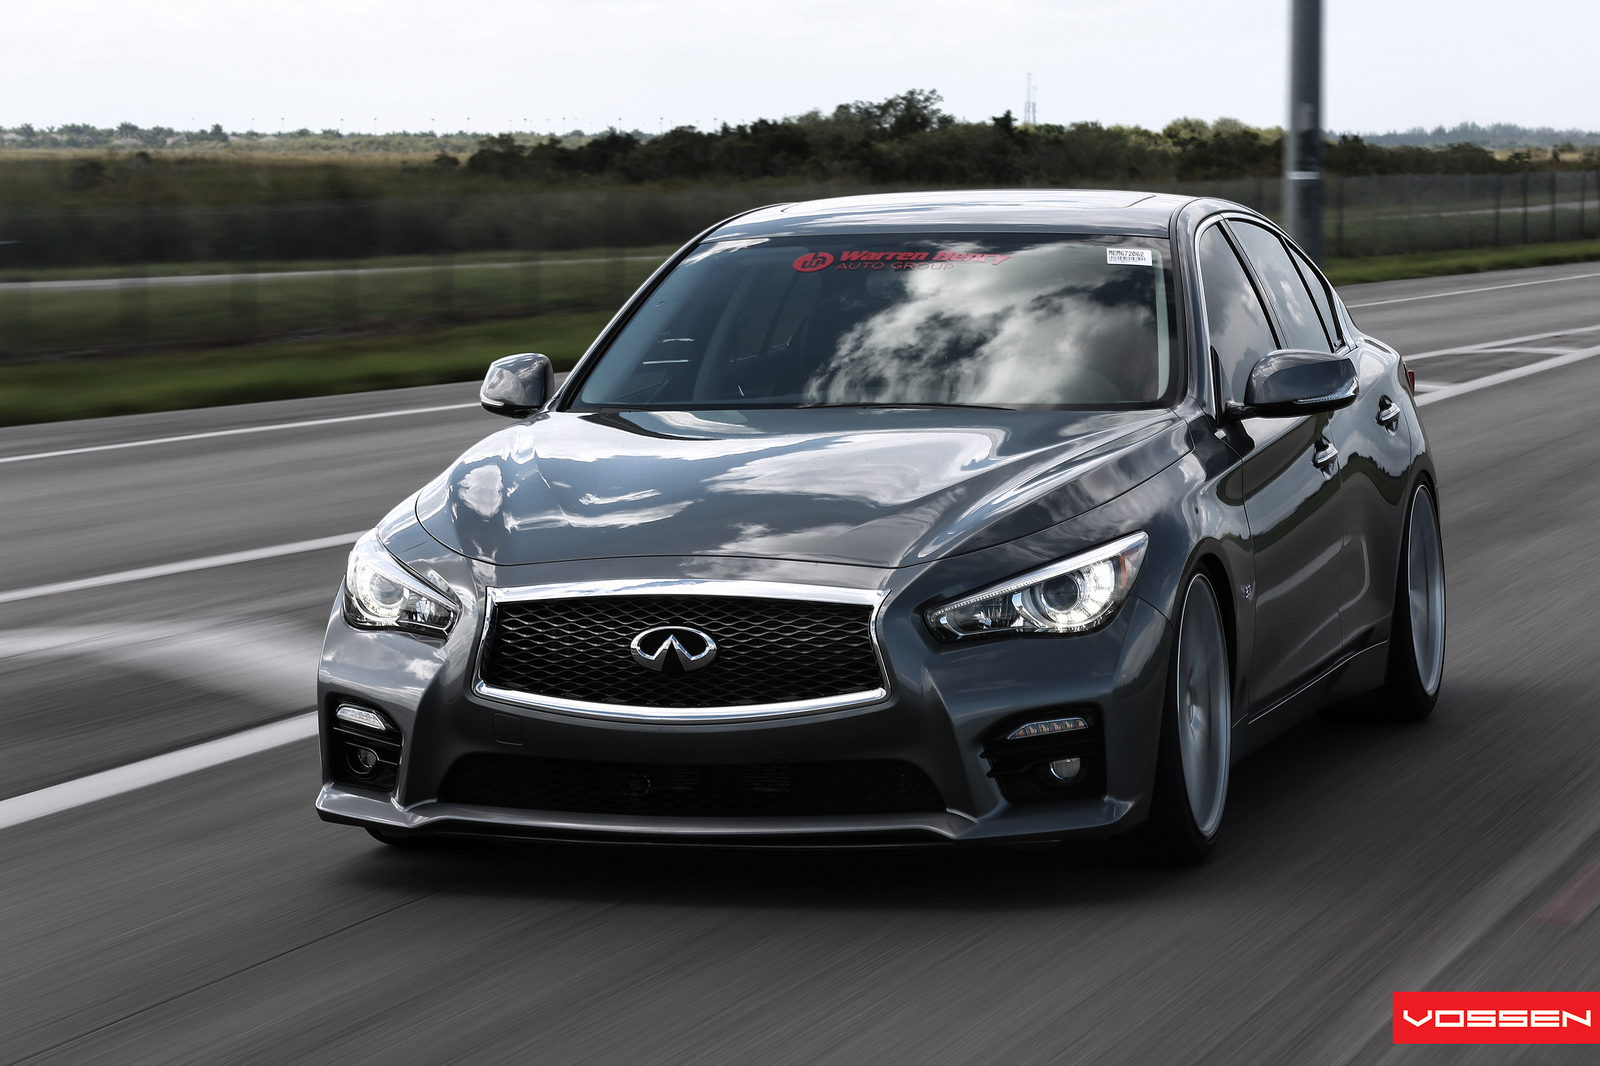 World's First Modified 2014 Infiniti Q50 S Gets Vossen ...